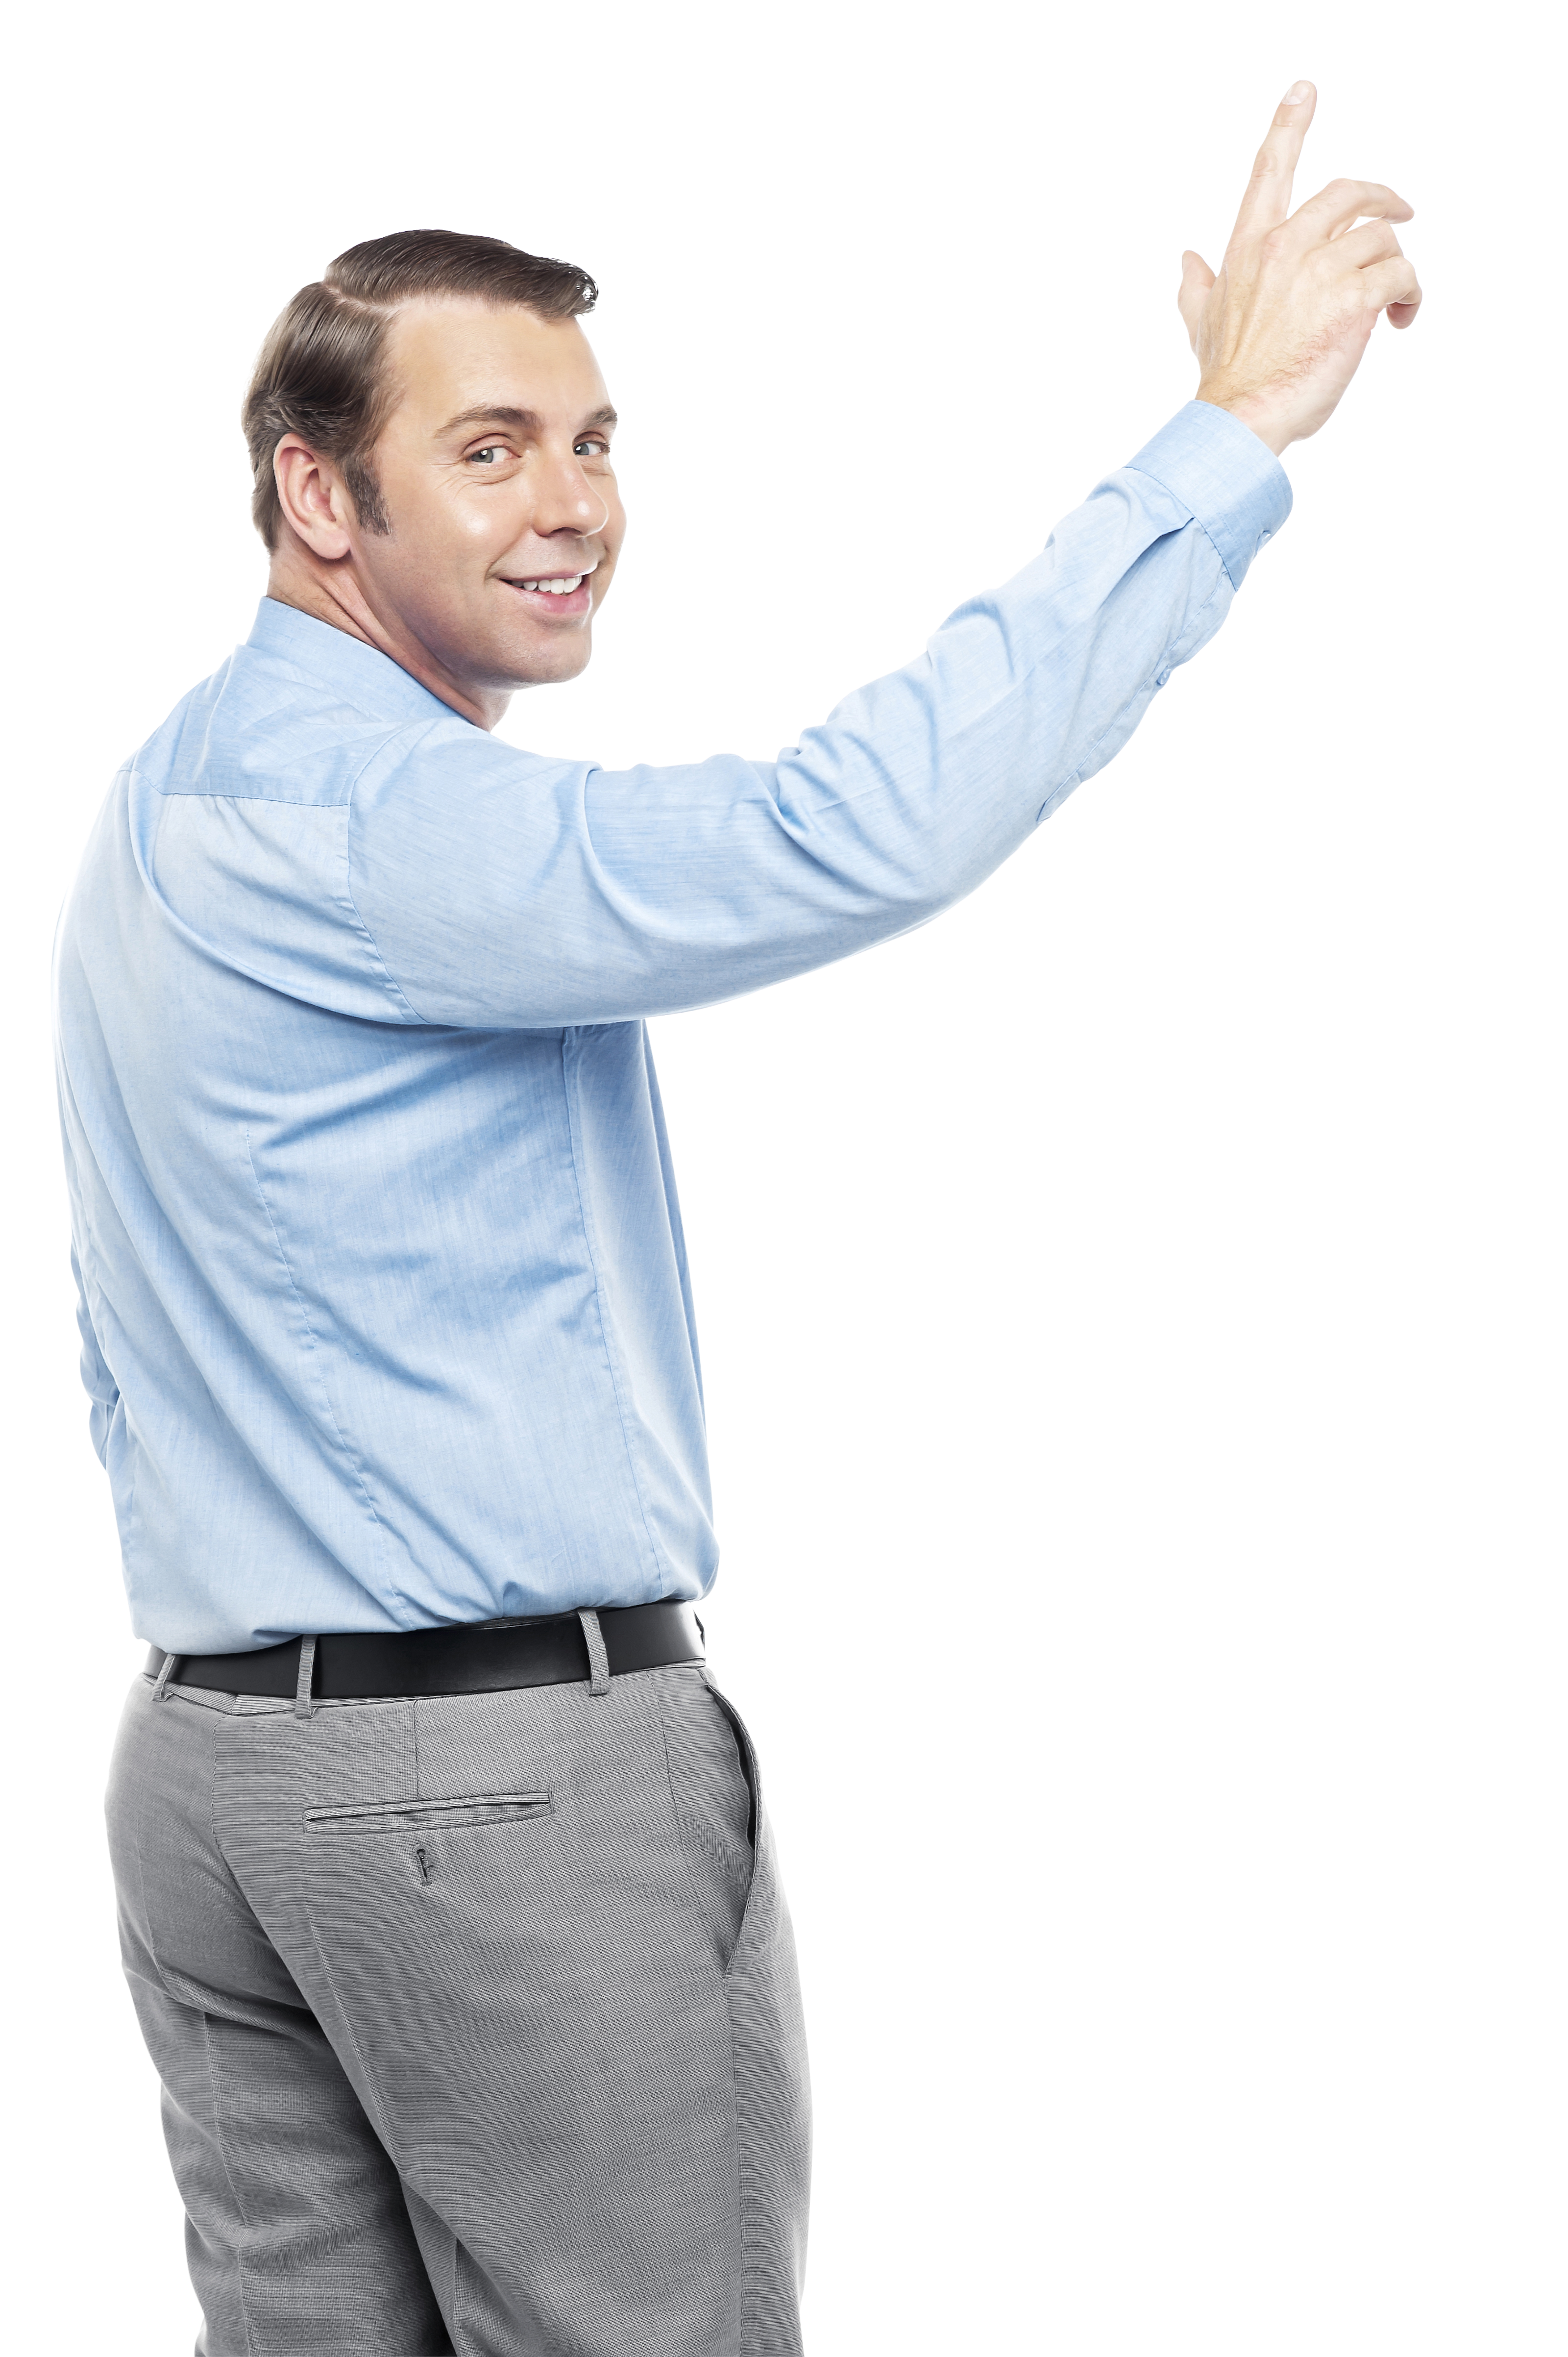 Man pointing finger png. Up royalty free images